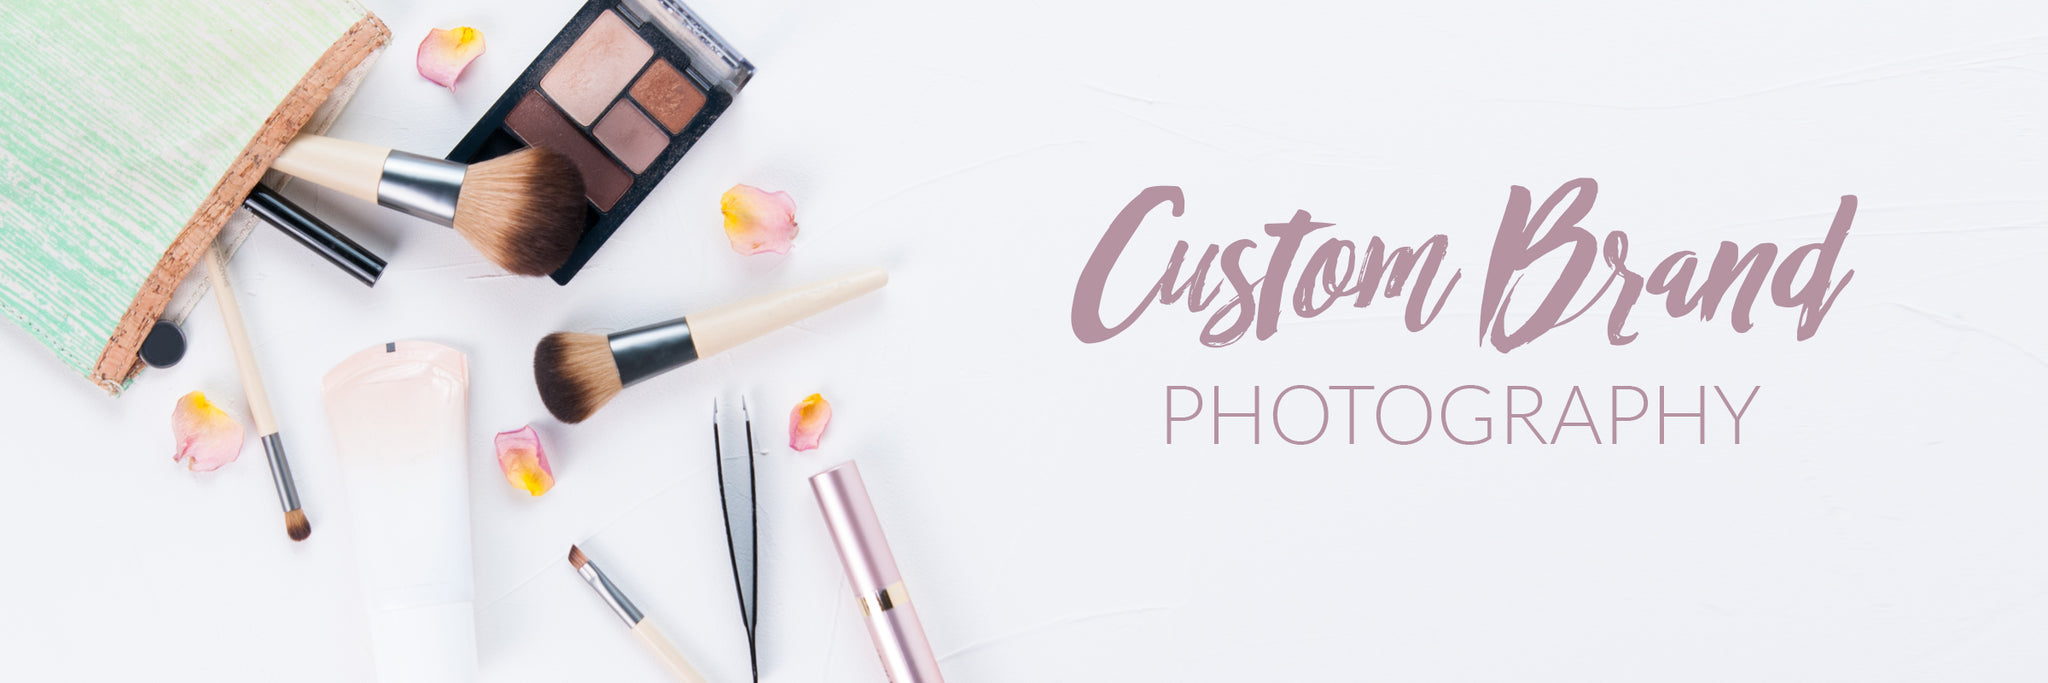 Custom brand photography example of skin care products